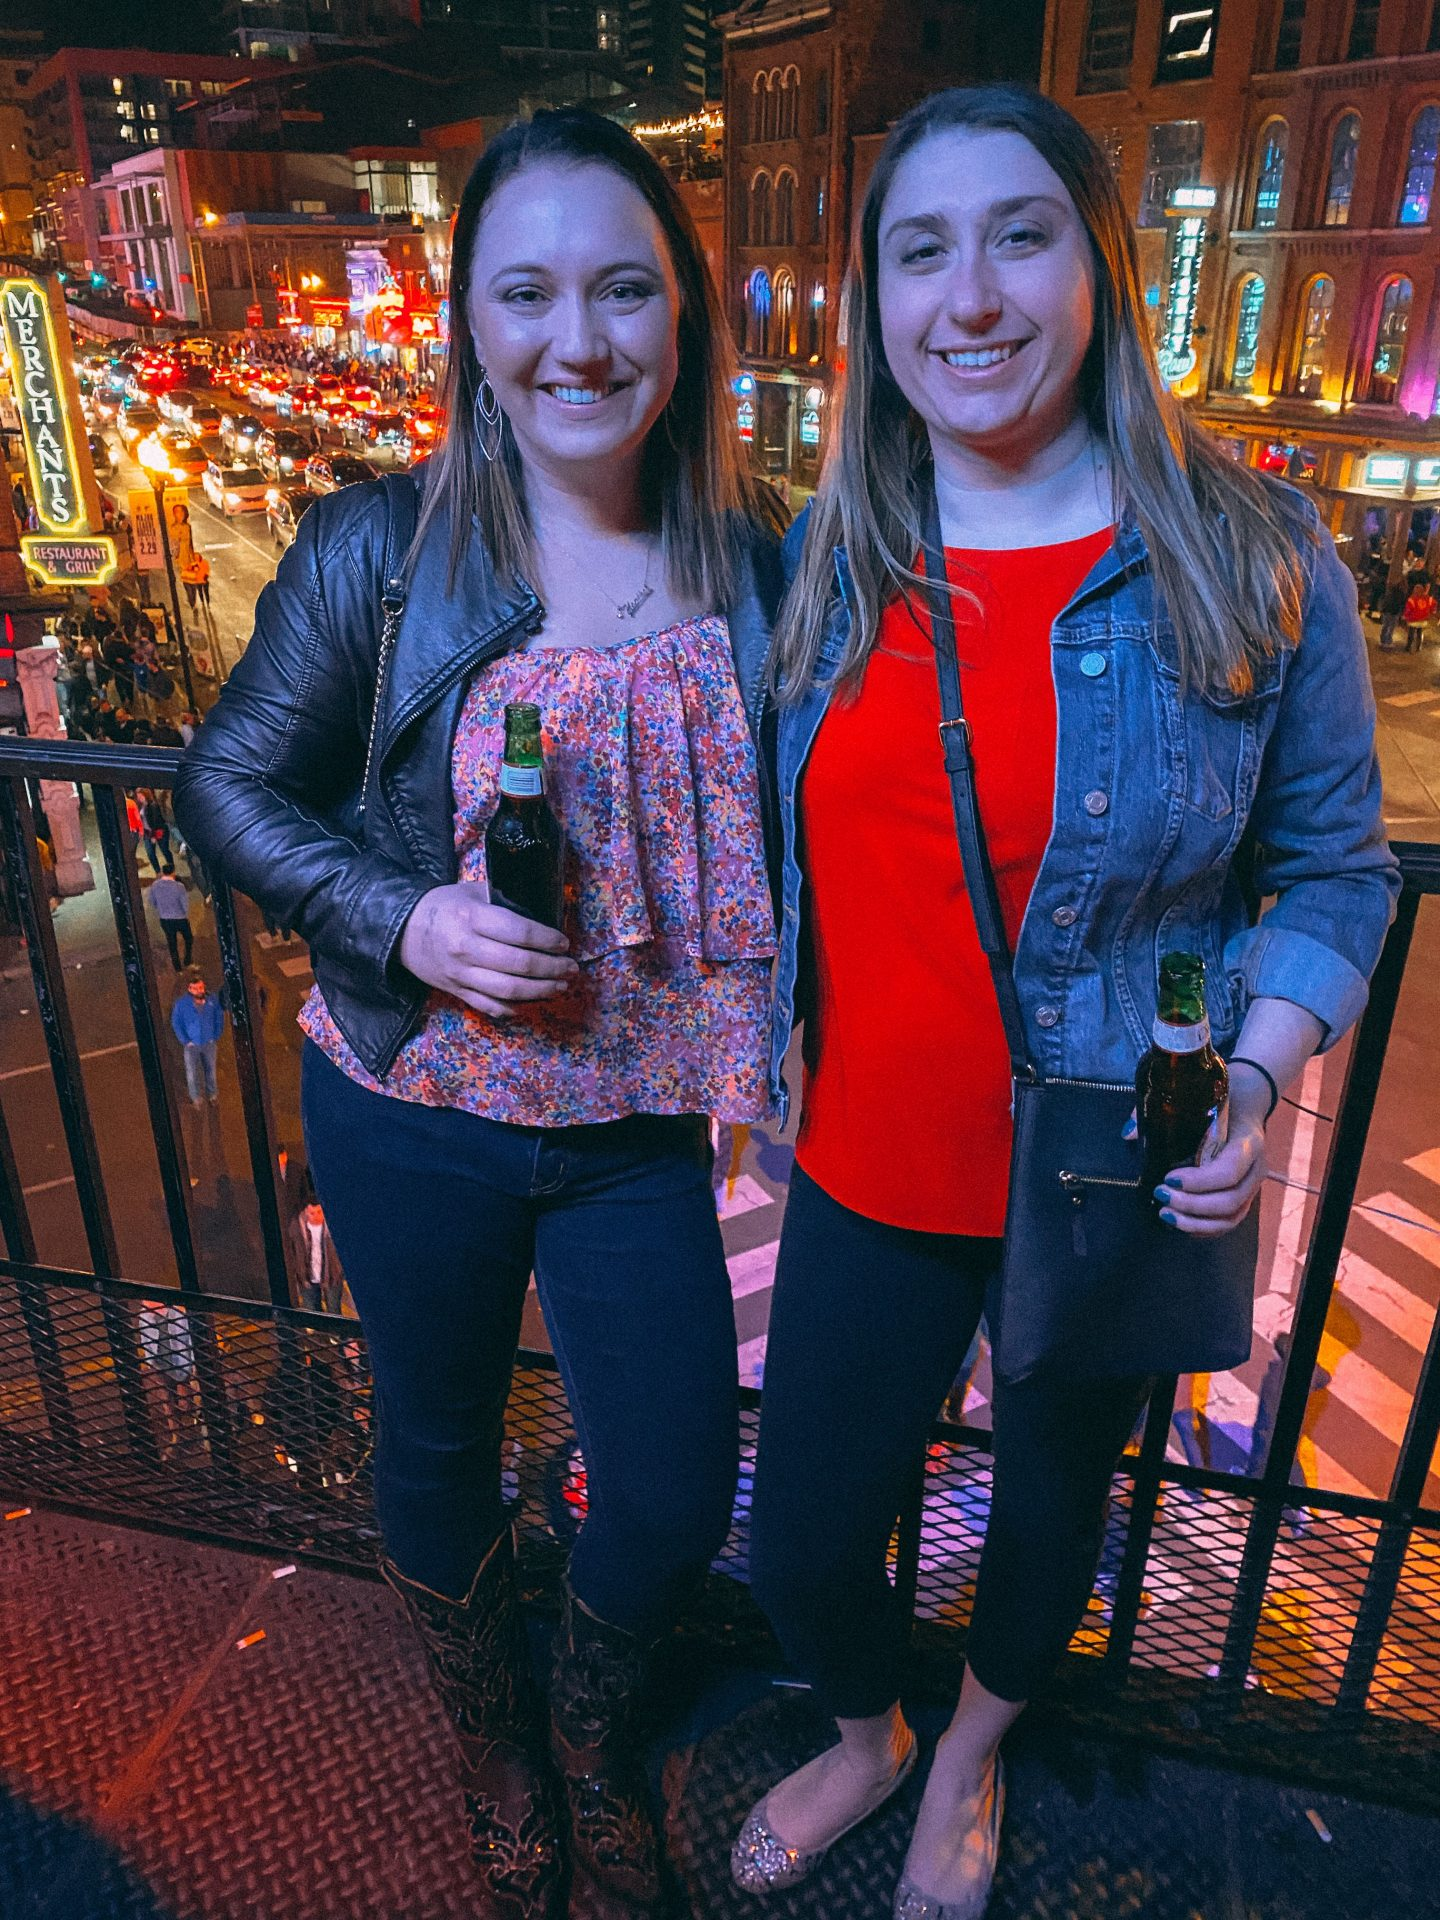 Two women showing the things to do in Nashville Tennessee standing on a balcony with Broadway in downtown Nashville's bright lights during night behind them. Wearing cowboy boots, jeans & a light jacket holding beers smiling.